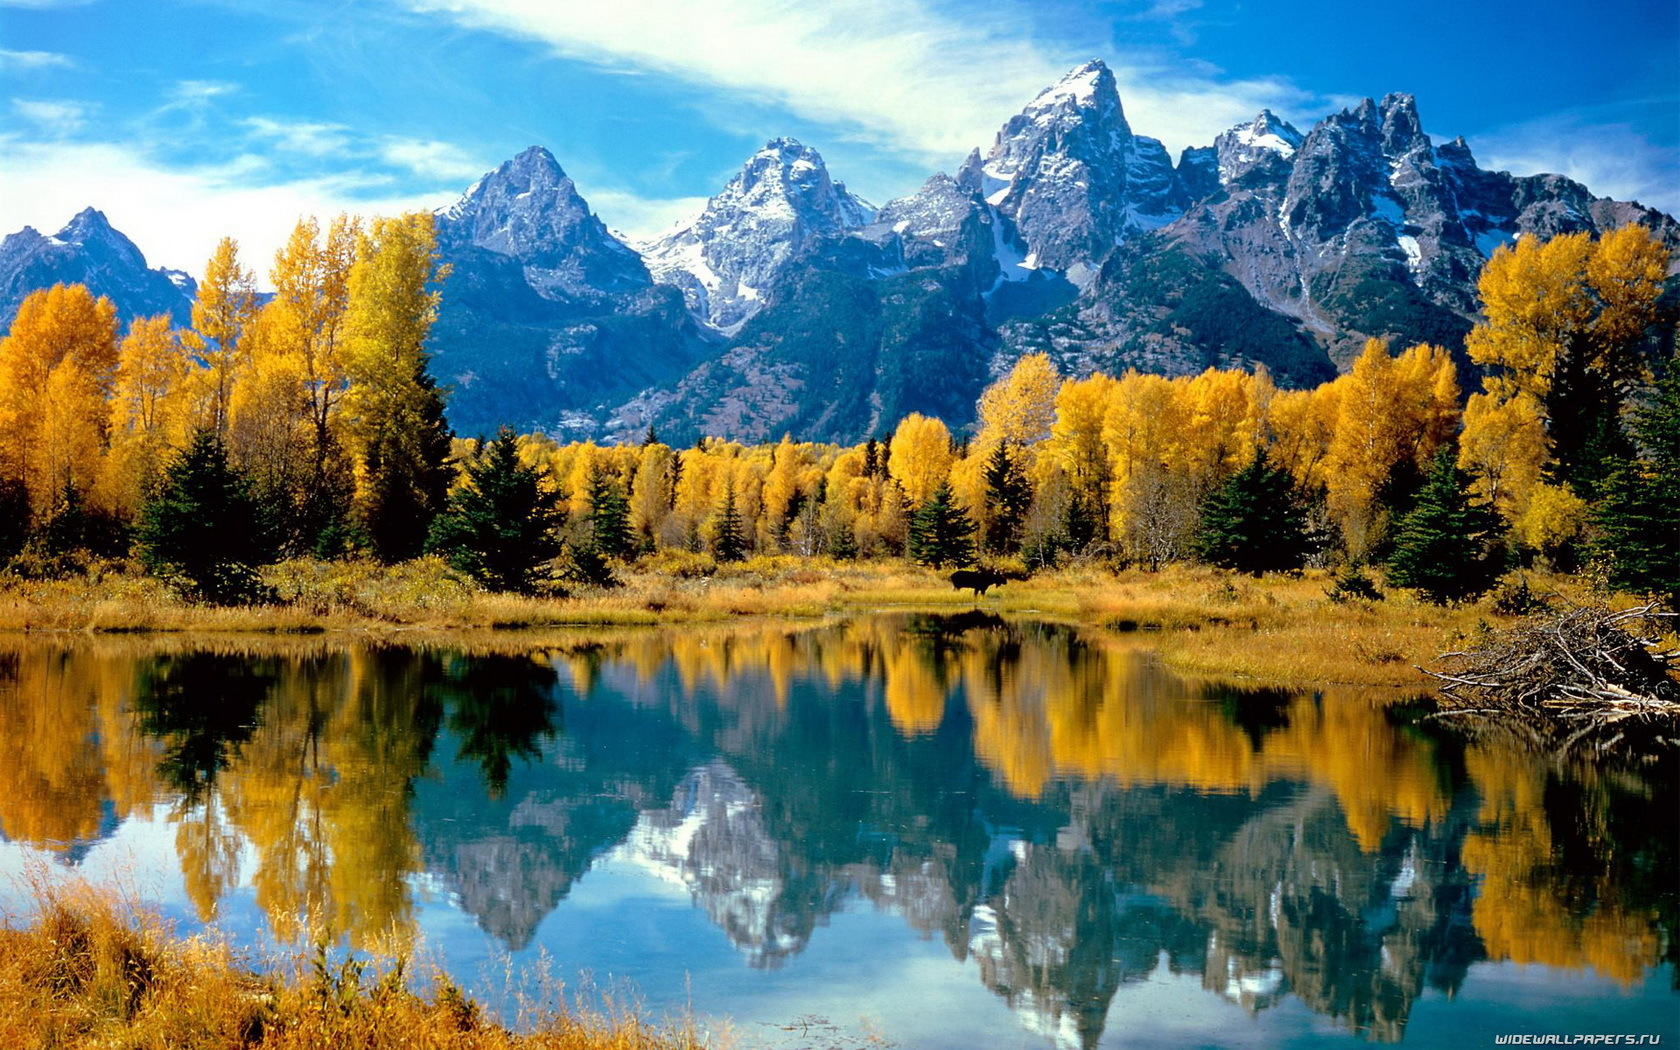 Download mobile wallpaper Mountains, Autumn, Water, Trees, Landscape for free.